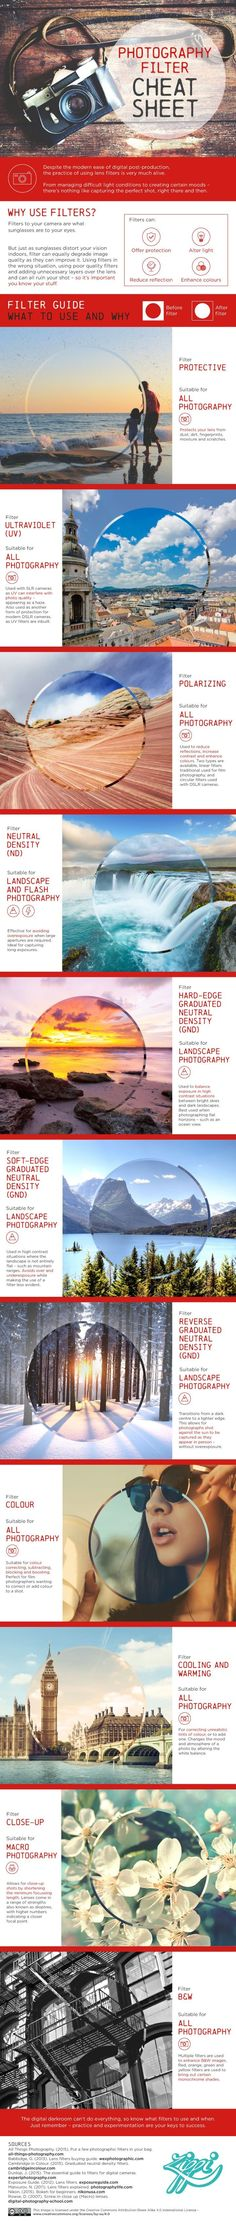 Landscape Photography Tips: Photography Filters - A Cheat Sheet